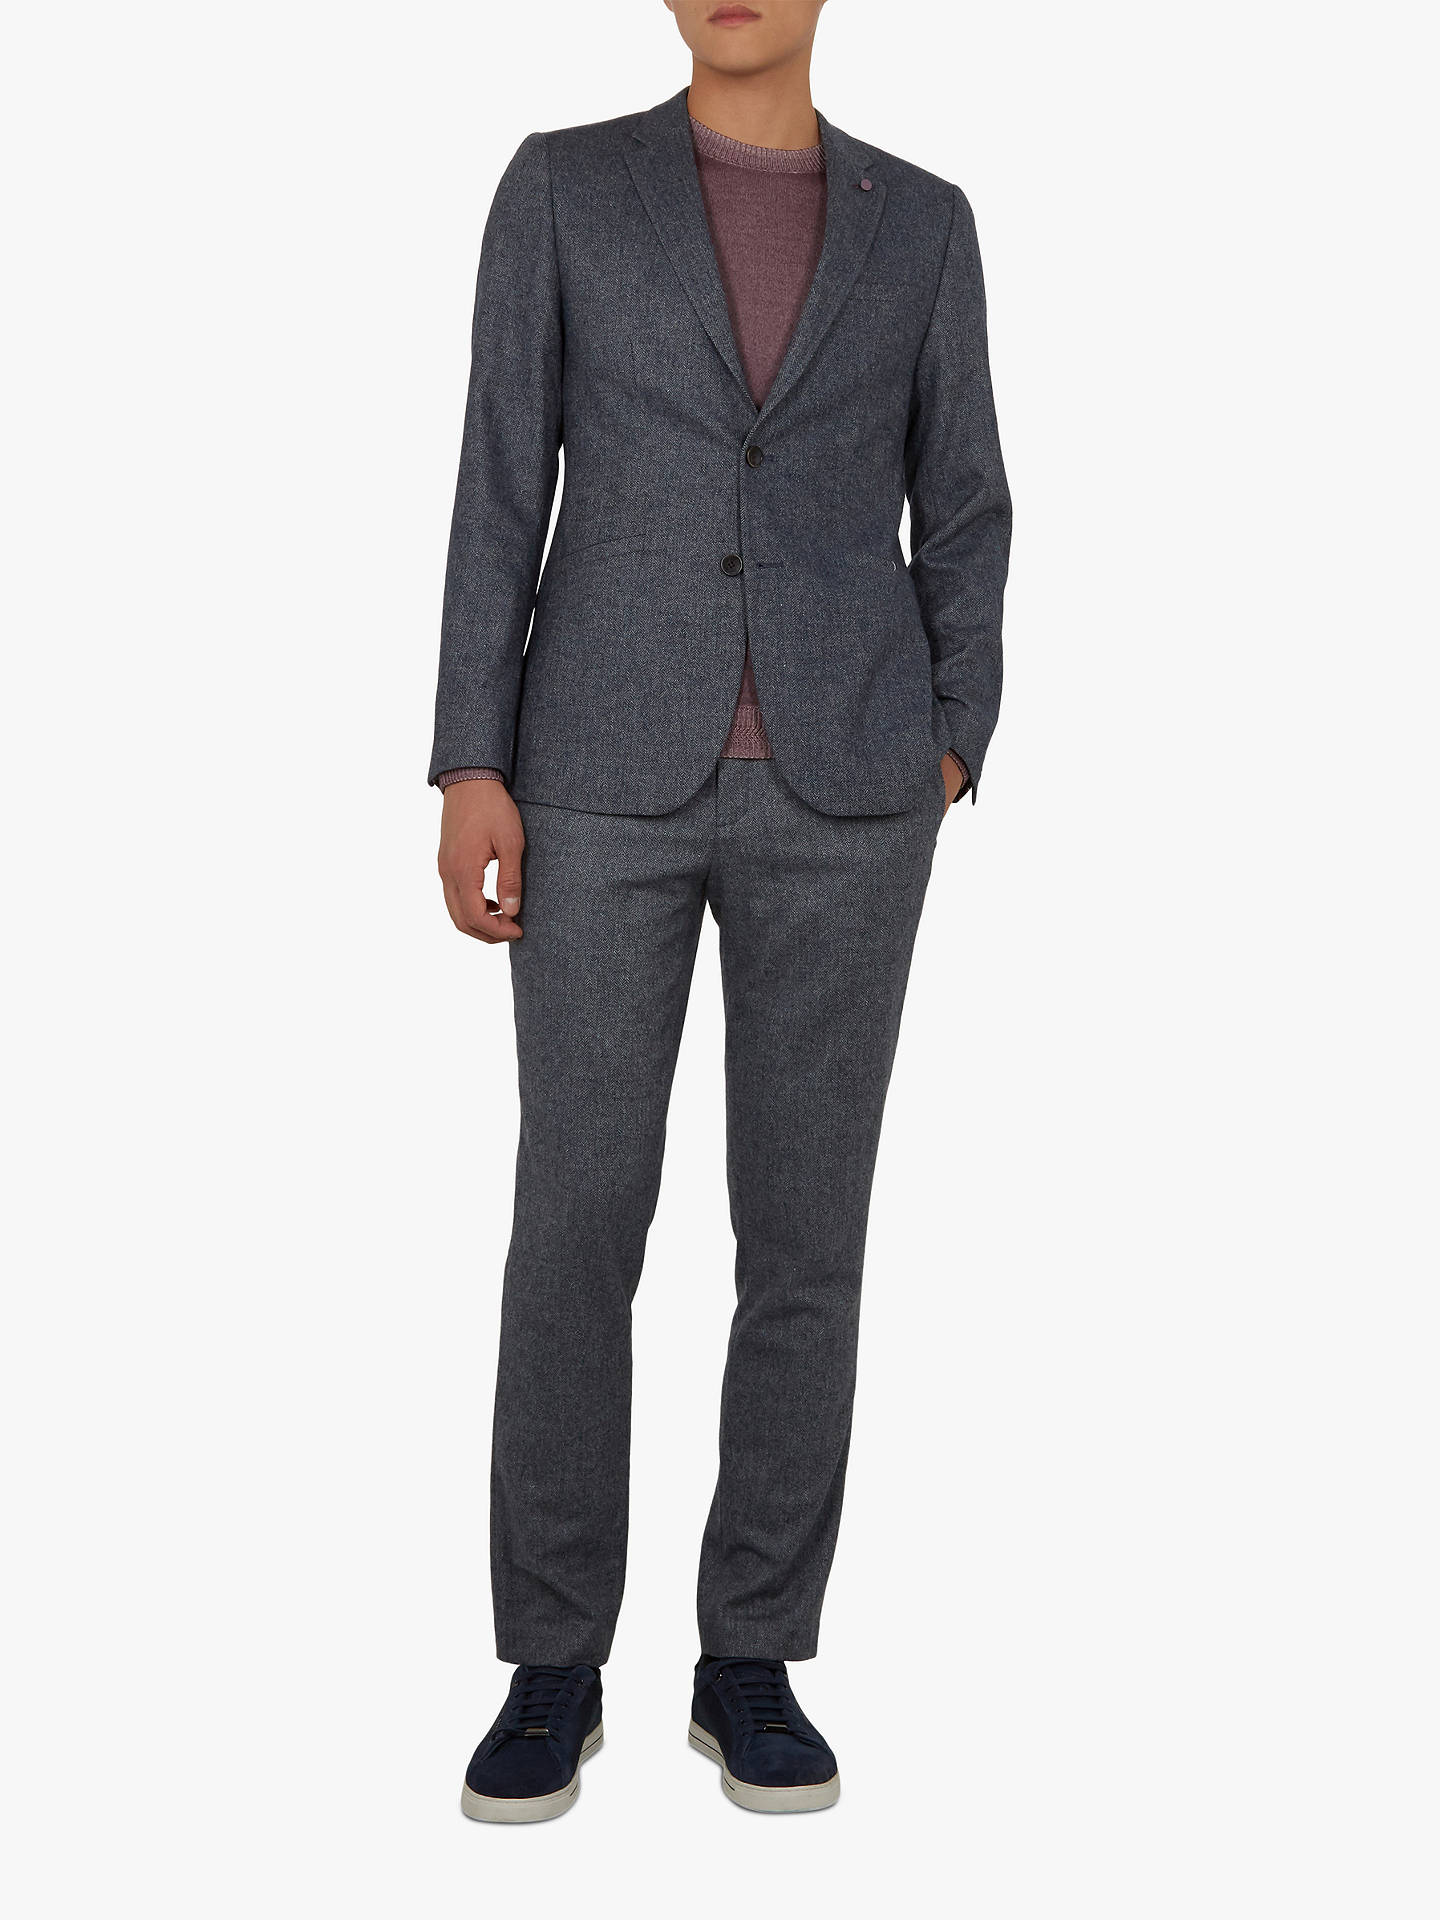 BuyTed Baker Jumpinn Blazer, Blue, 6 Online at johnlewis.com